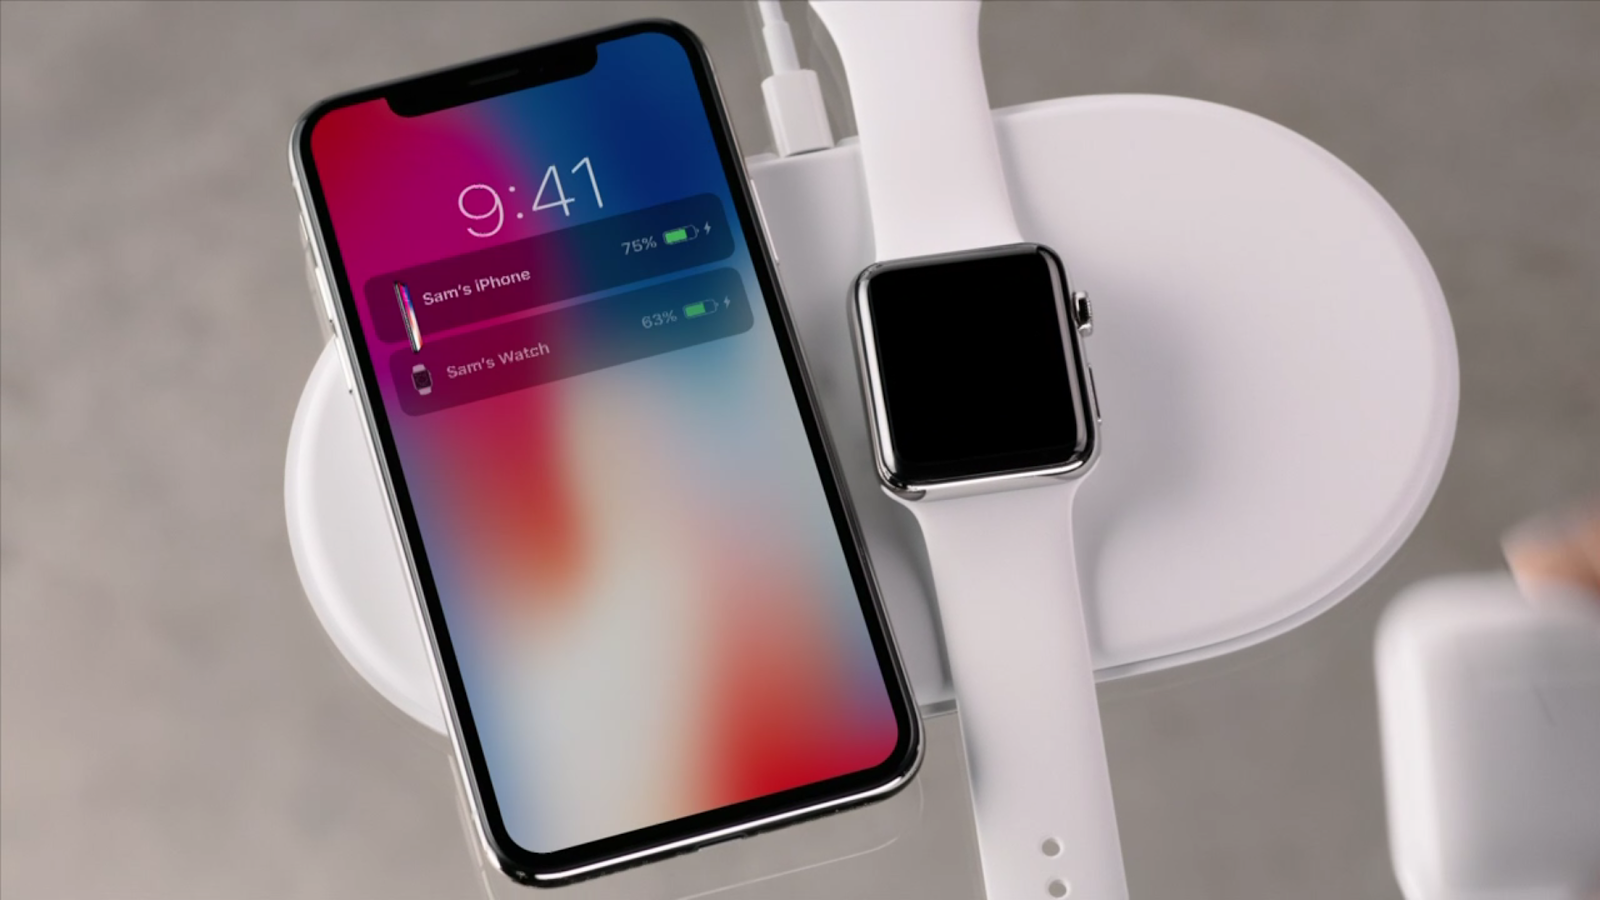 IMG_4148 Check out the Stunning iPhone X (iPhone 10) images Apple